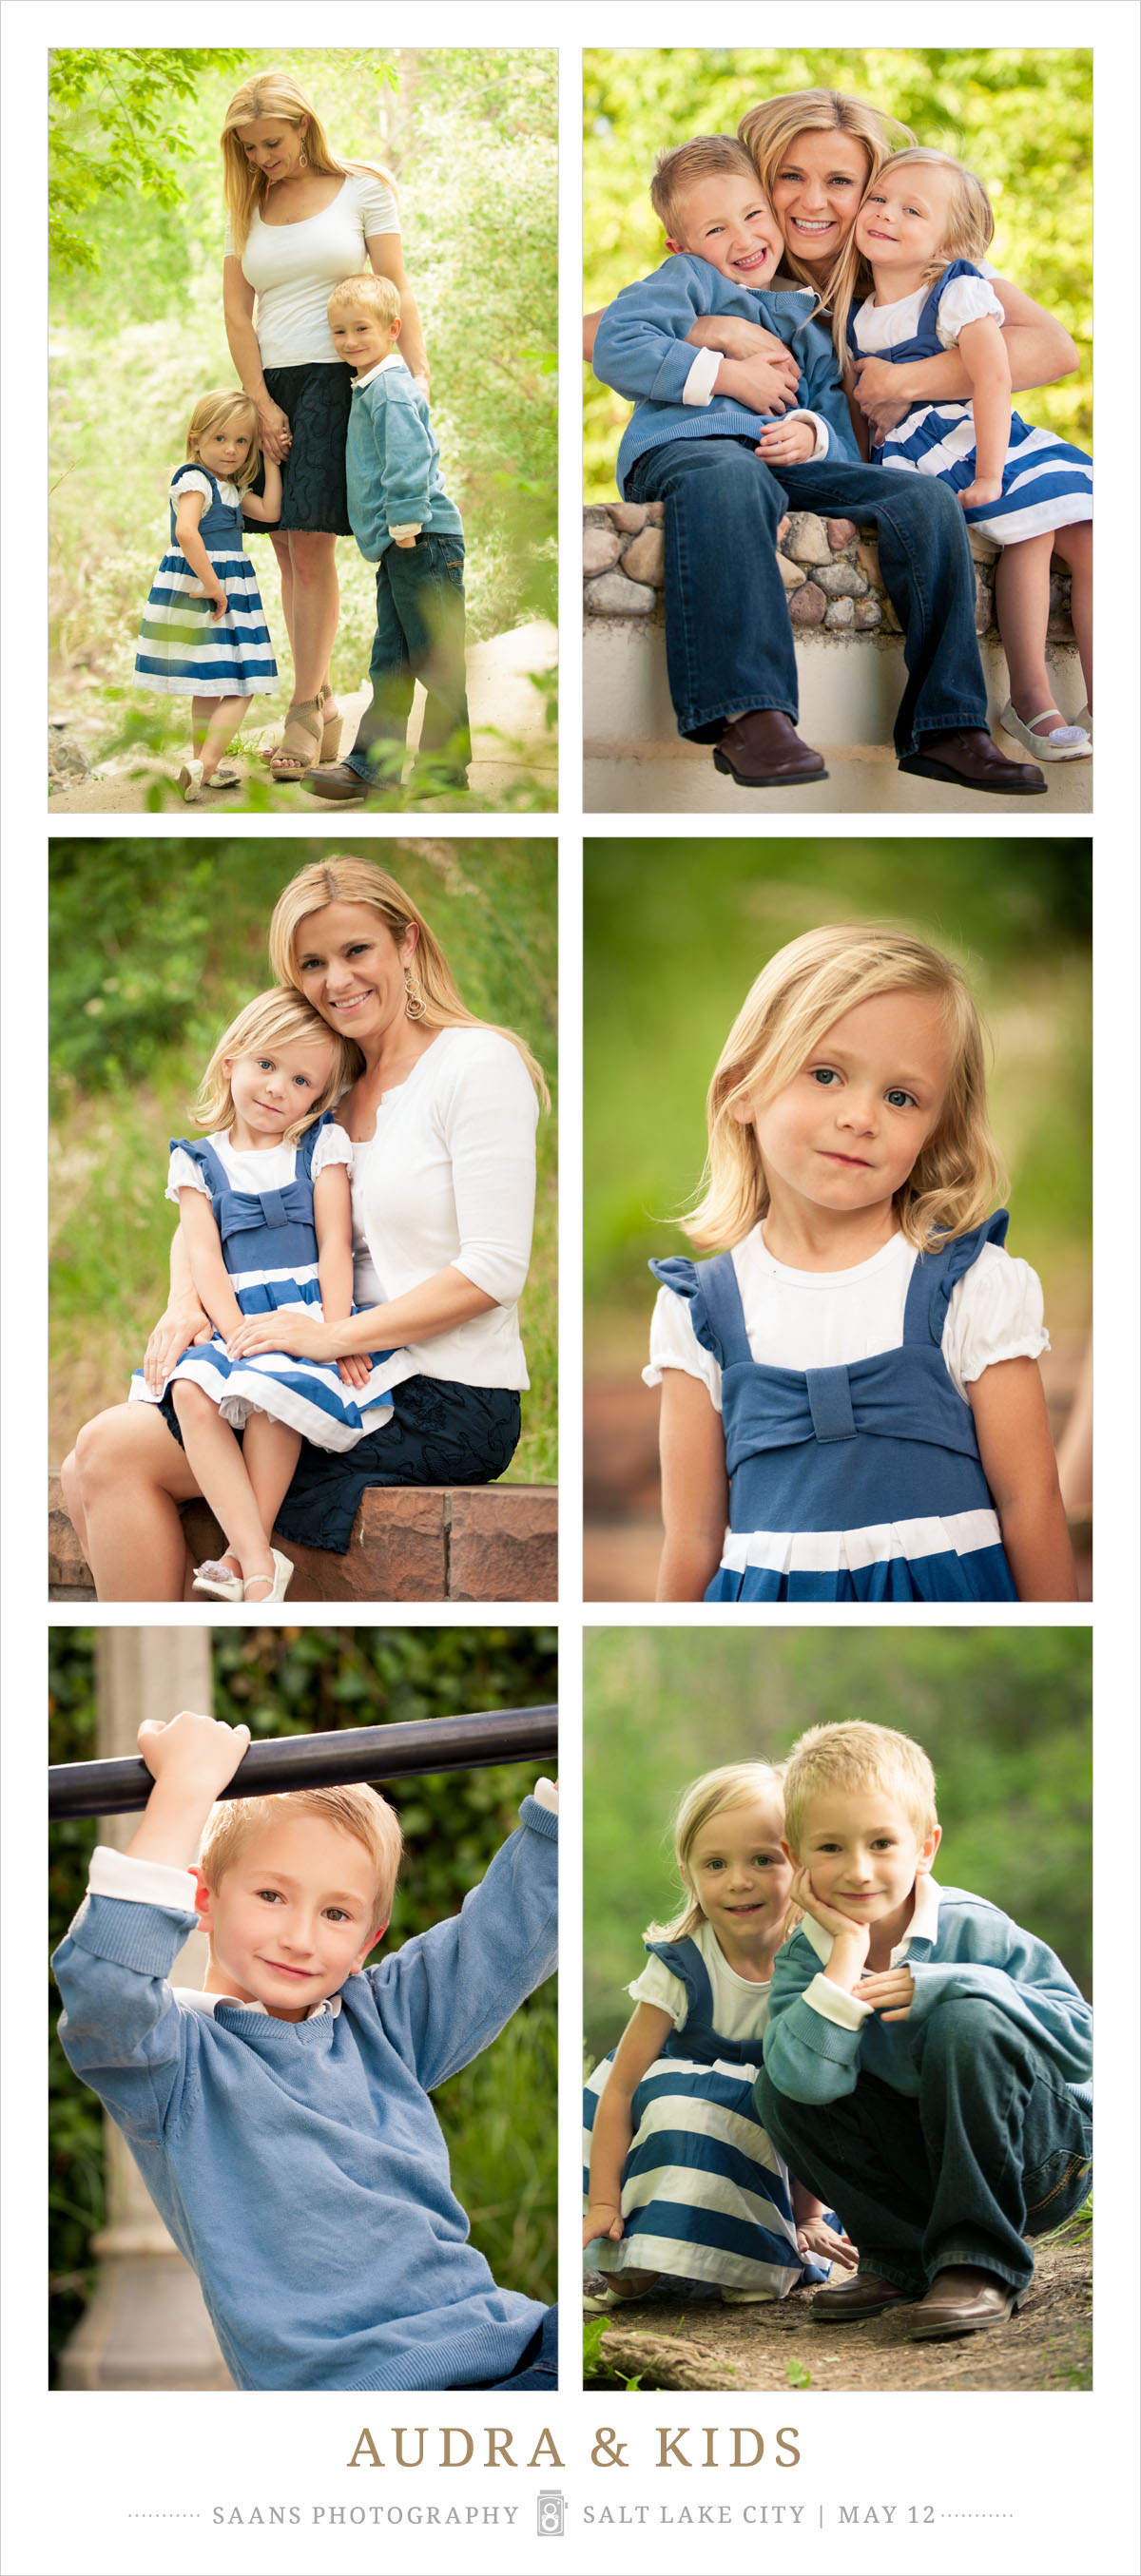 Audra and Kids Family Shoot